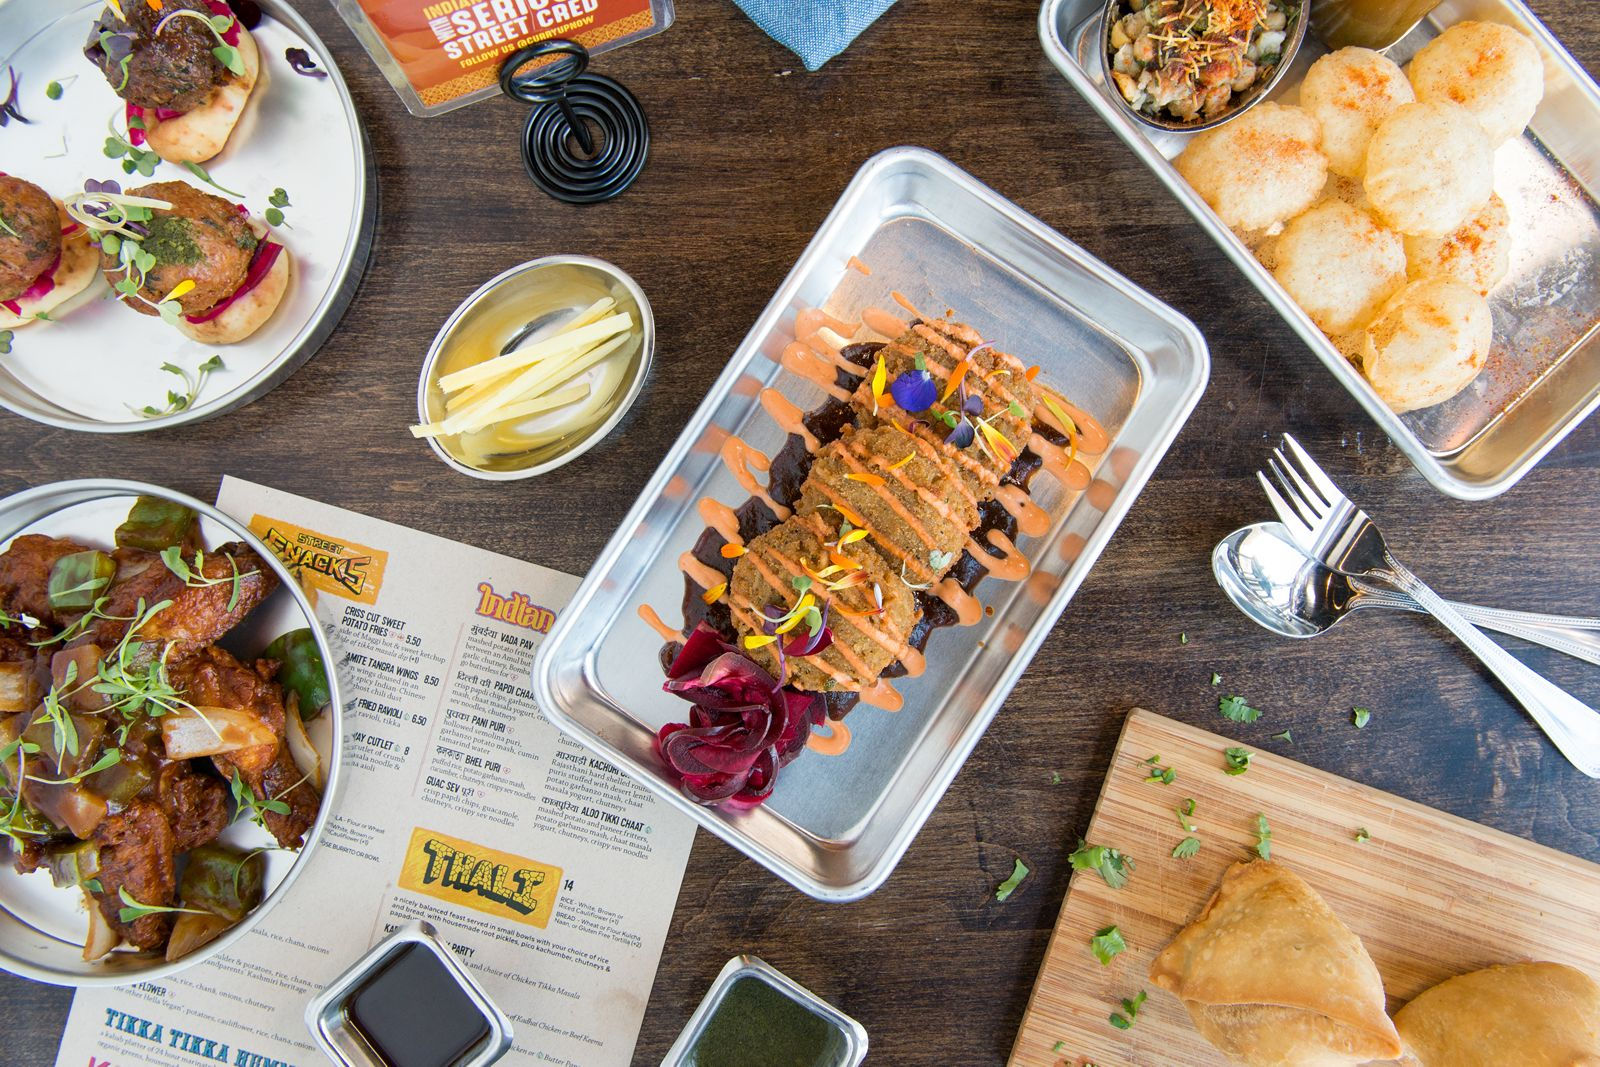 Curry Up Now, the nation's largest and fastest growing Indian fast casual chain, has secured its first restaurant location in Salt Lake City, Utah at The Shops at Fort Union. The restaurant is slated to open in late Fall of this year.